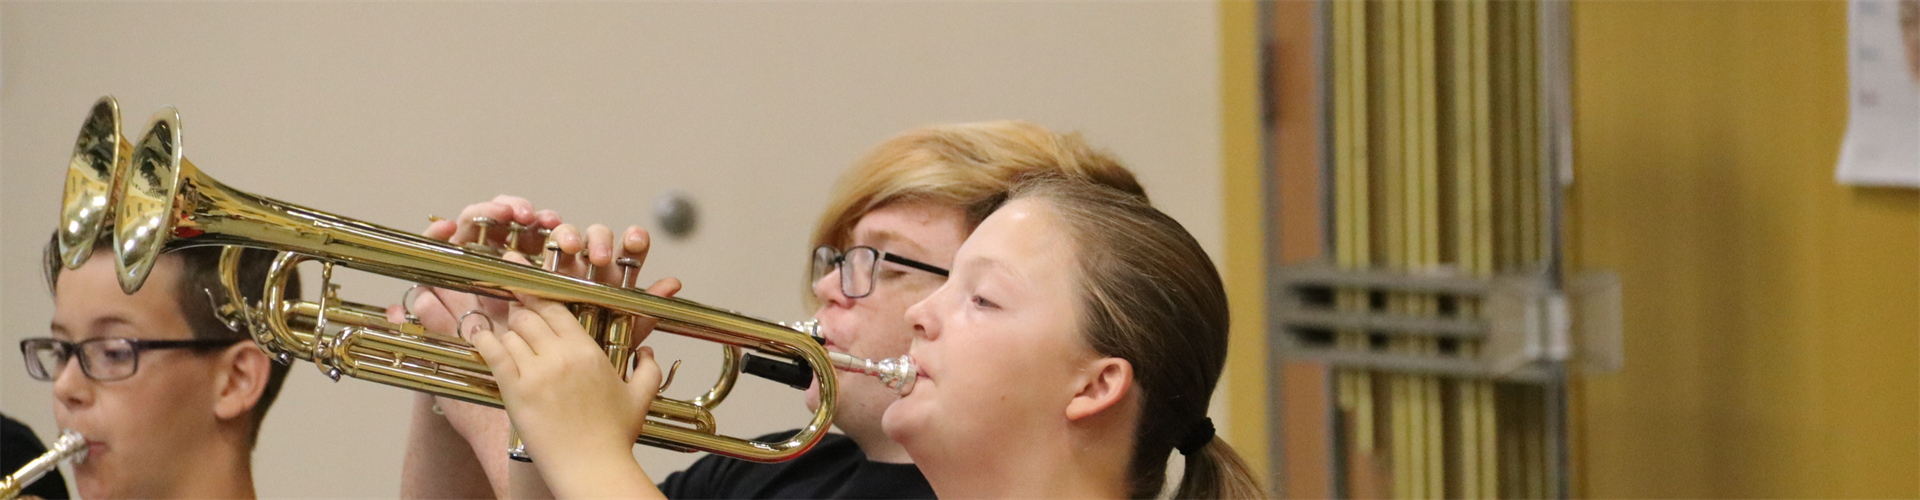 Students playing horns.